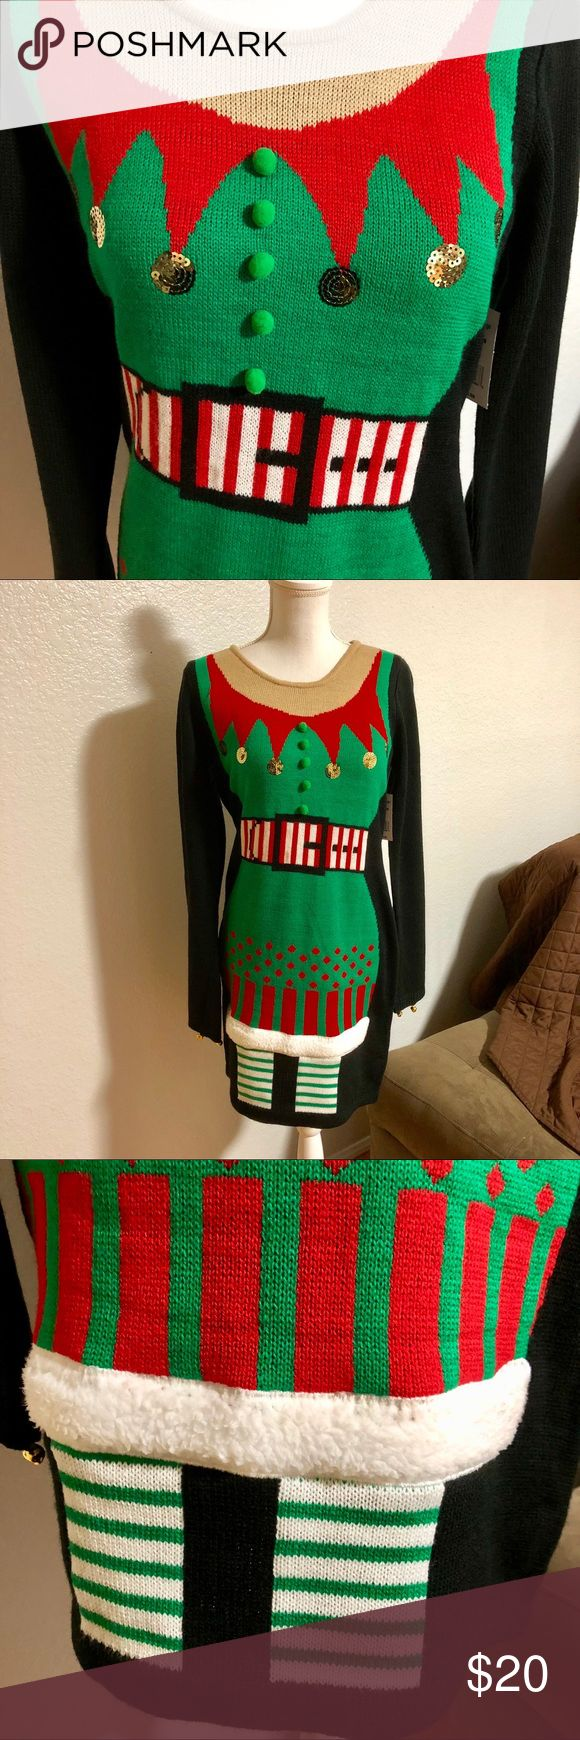 New Christmas Elf Sweater Dress Sz L Super cute Christmas Elf Outfit Sweater Dress Super cute to/from tag label 5 bells lined on each sleeve/ semi bell style sleeve Faux sheep fur trim  Figure flattering 100% acrylic Christmas Party Ready! Purchased at Navy Exchange Dresses